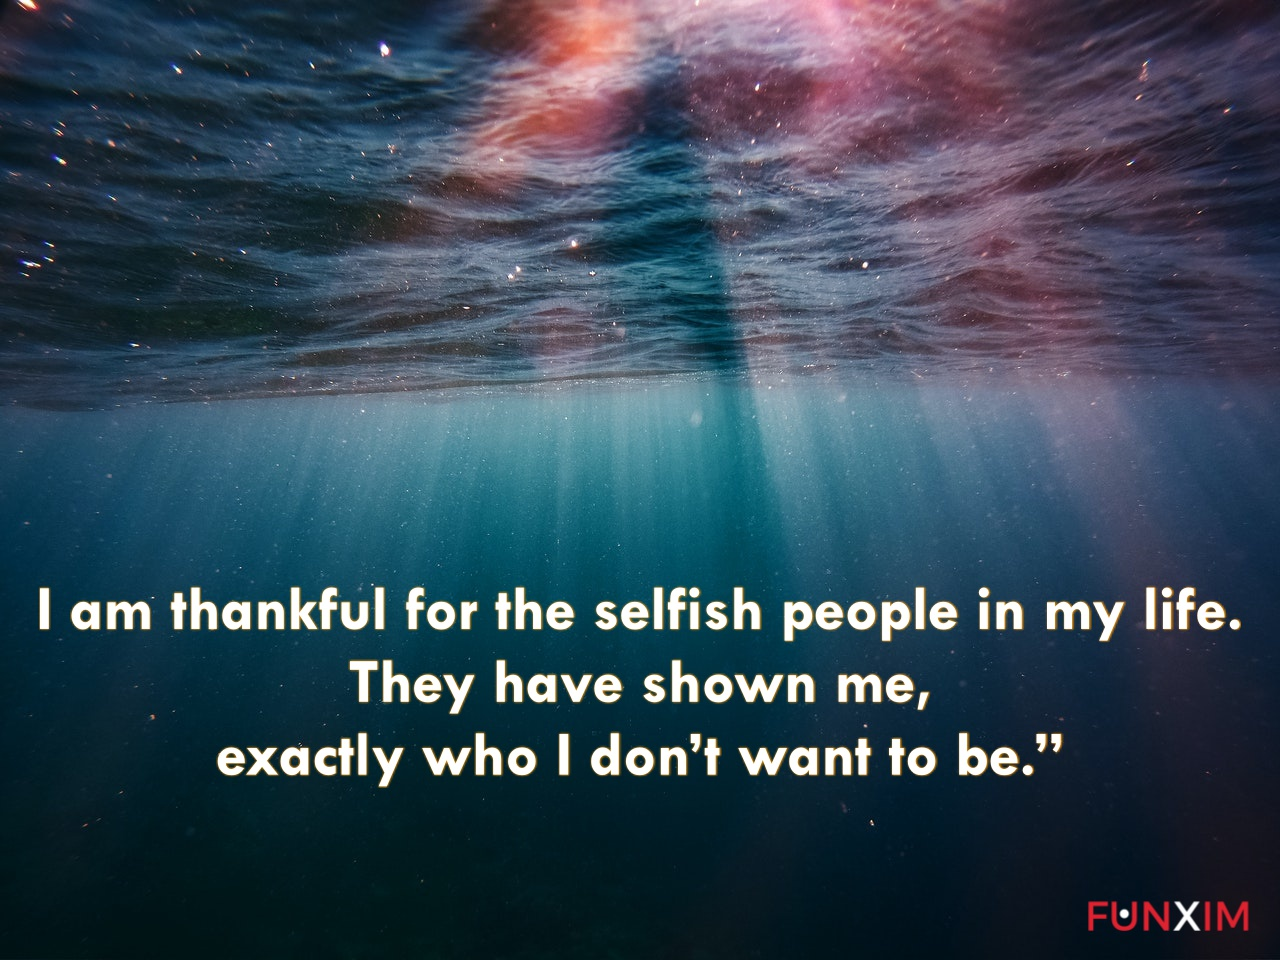 """I am thankful for the selfish people in my life. They have shown me, exactly who I don't want to be."""""""